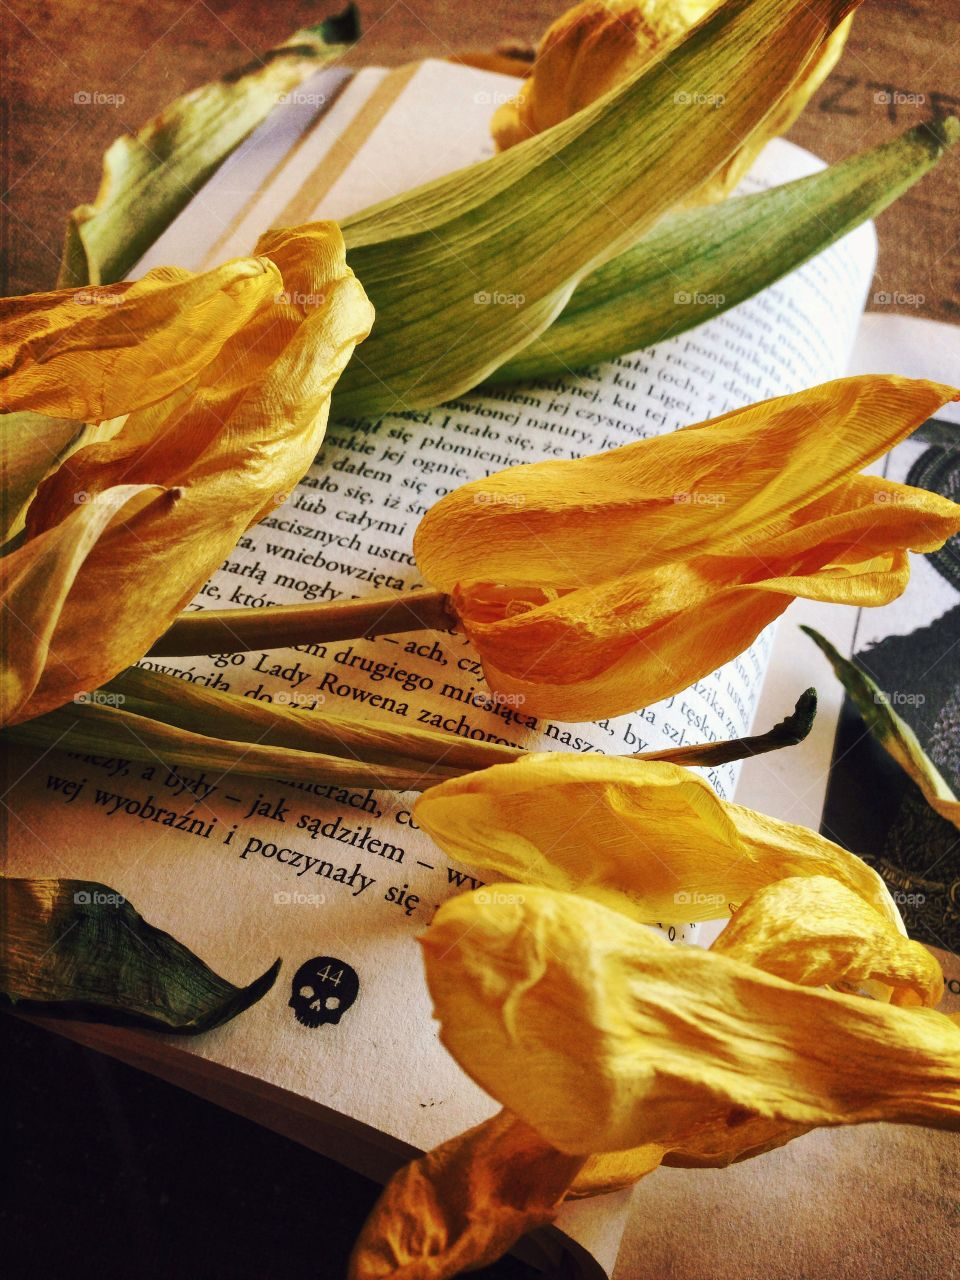 Tulips . Flowers on the book